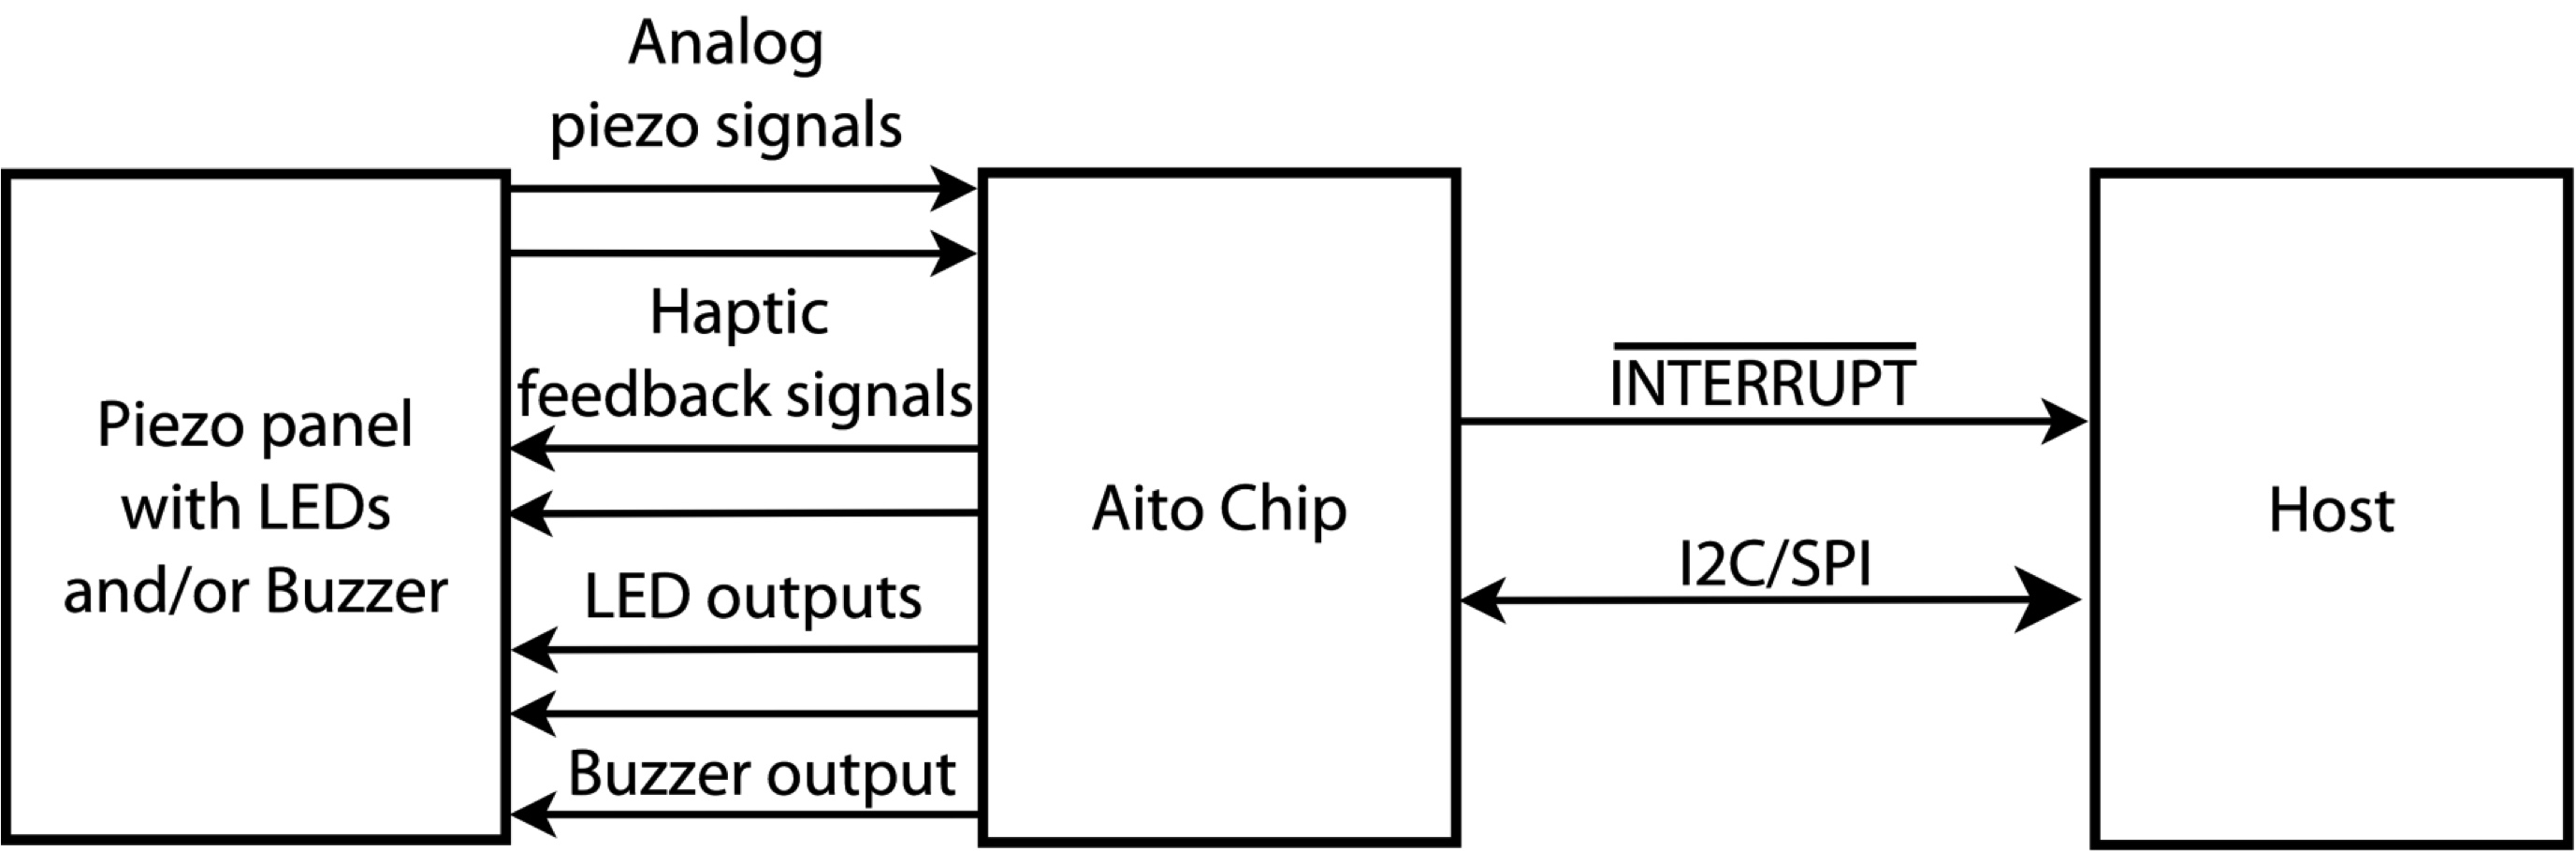 Figure 2: The Aito Chip provides a complete interface between a piezo touch switch panel, with its indicators and other feedback devices, and the host system.